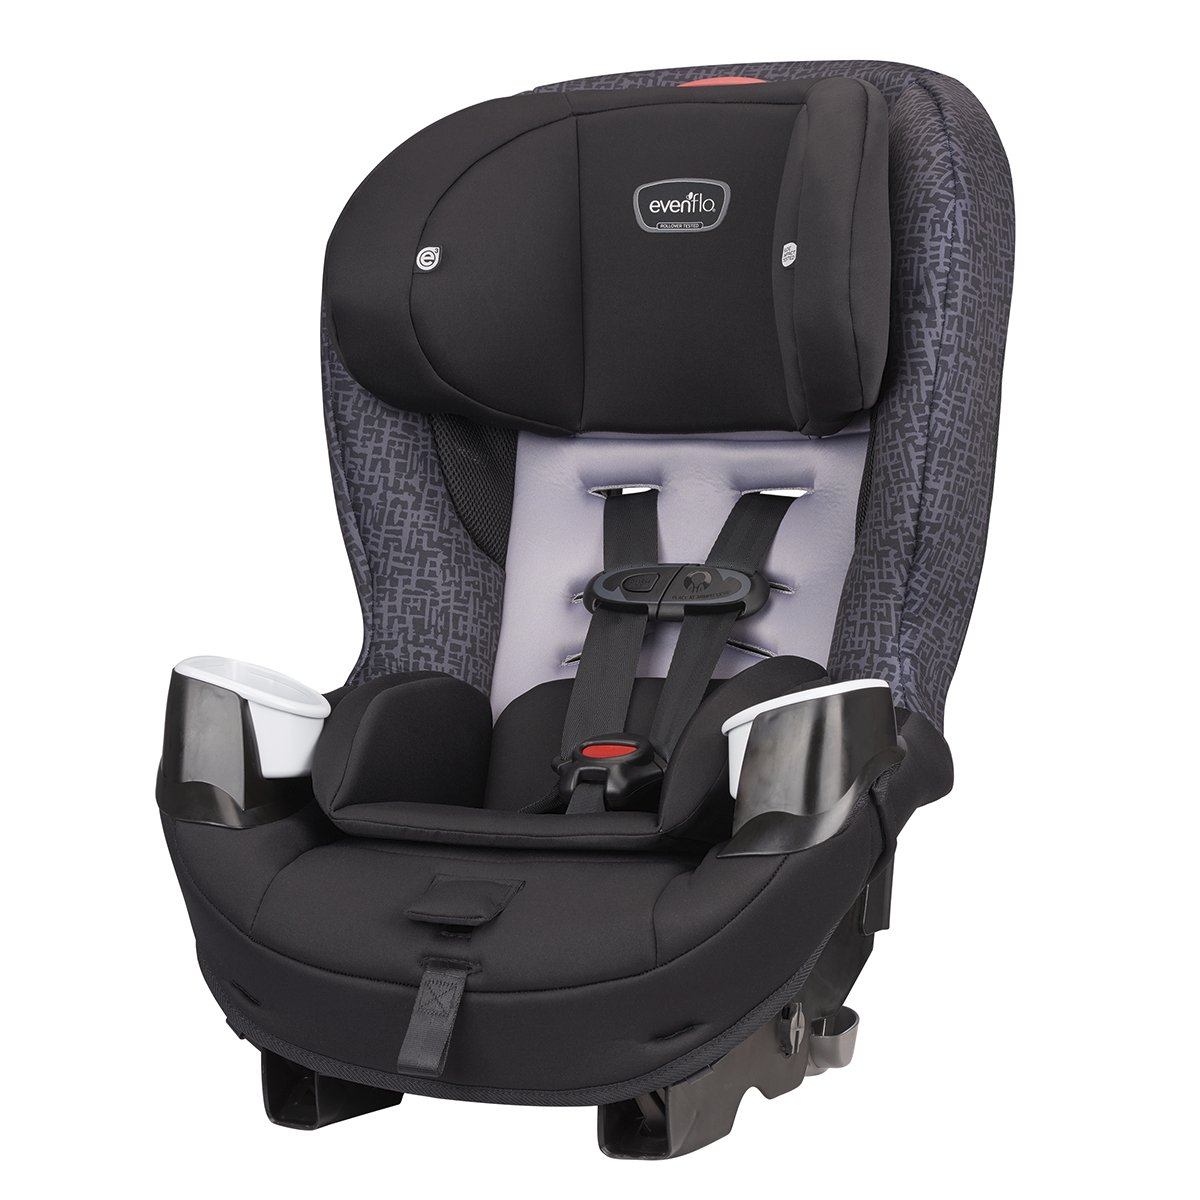 Evenflo Stratos 65 Convertible Car Seat, Boulder, Black/Grey, One Size 38312037